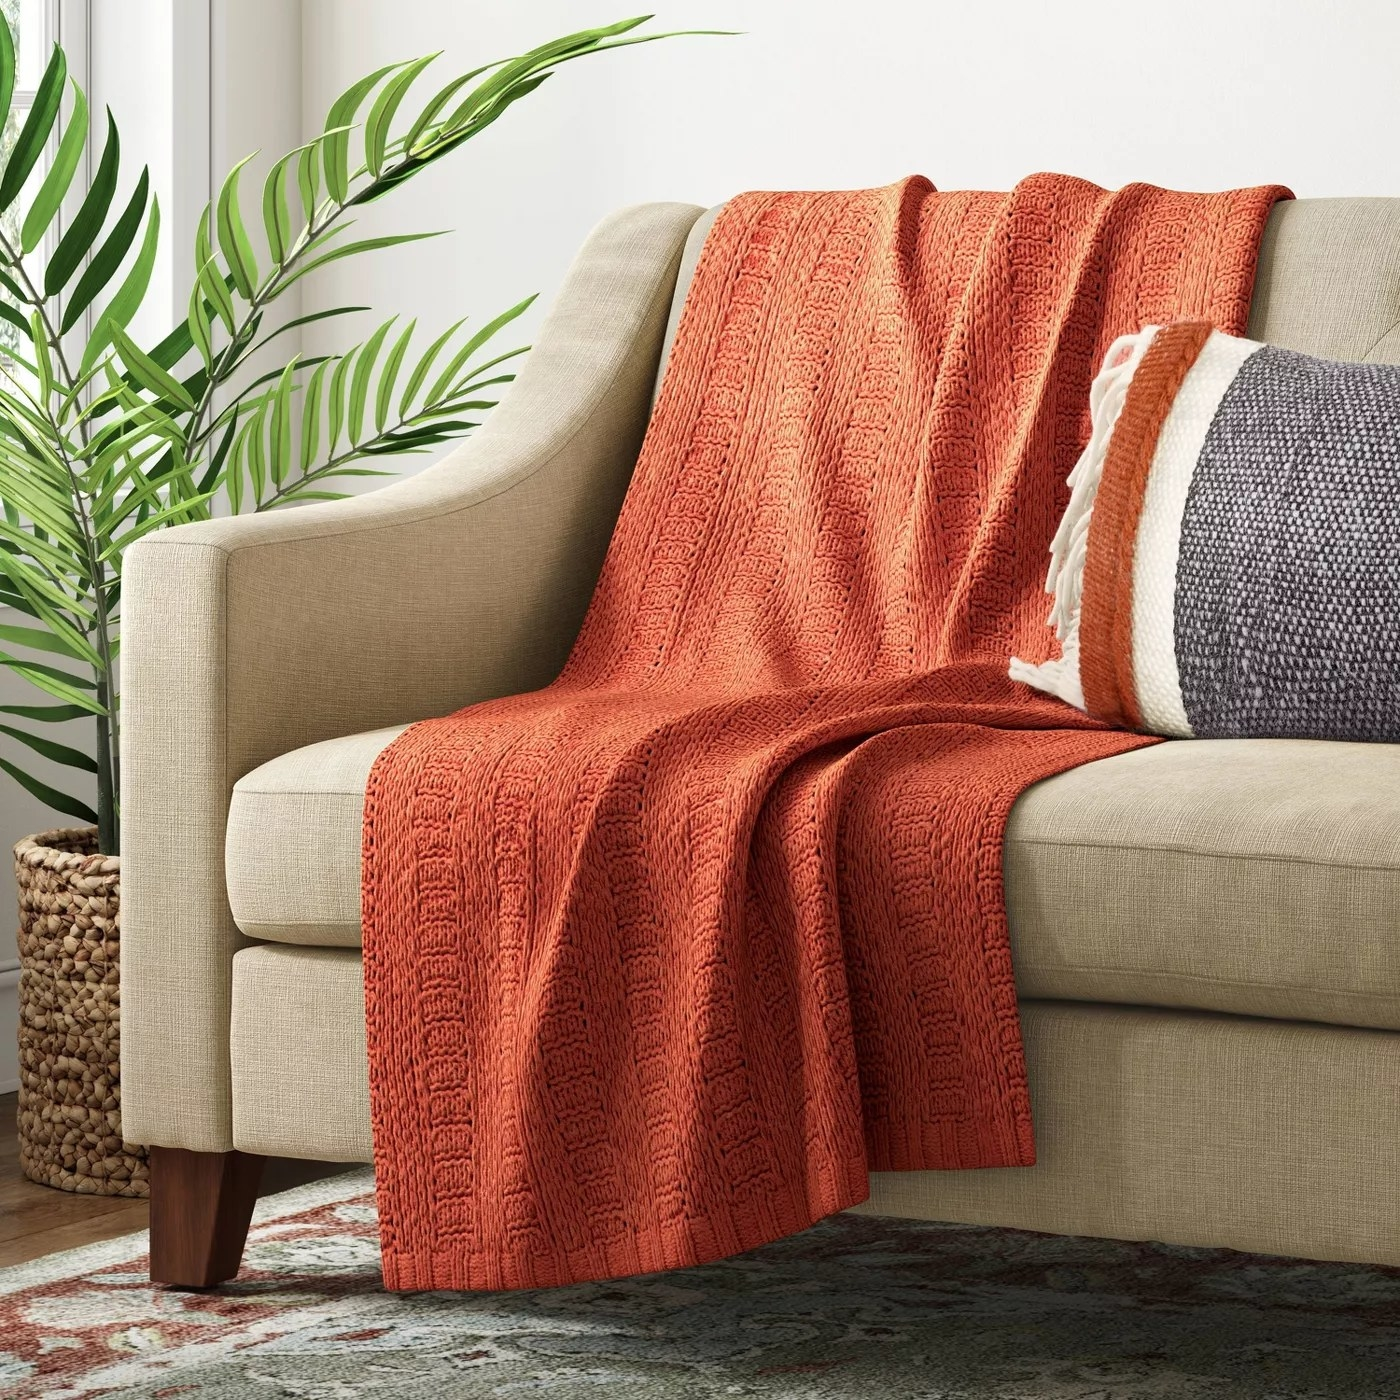 The blanket draped over a couch